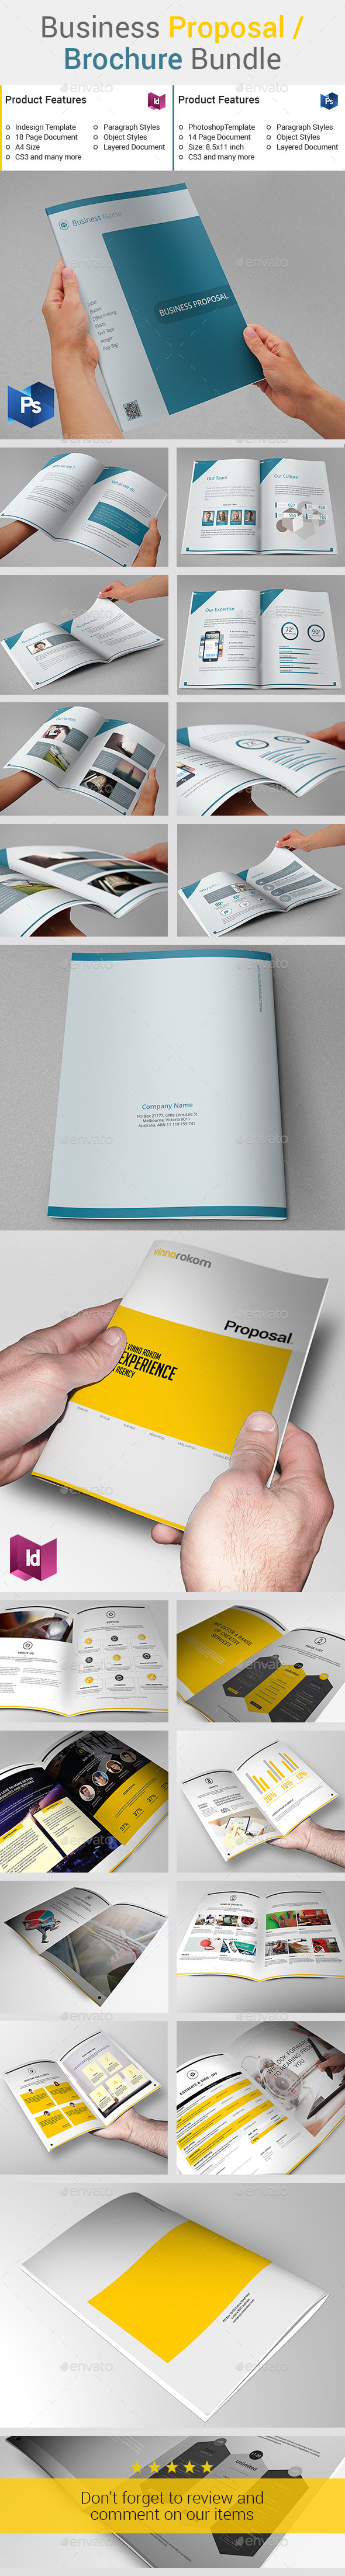 GraphicRiver Business Proposal Brochure Bundle 10206803